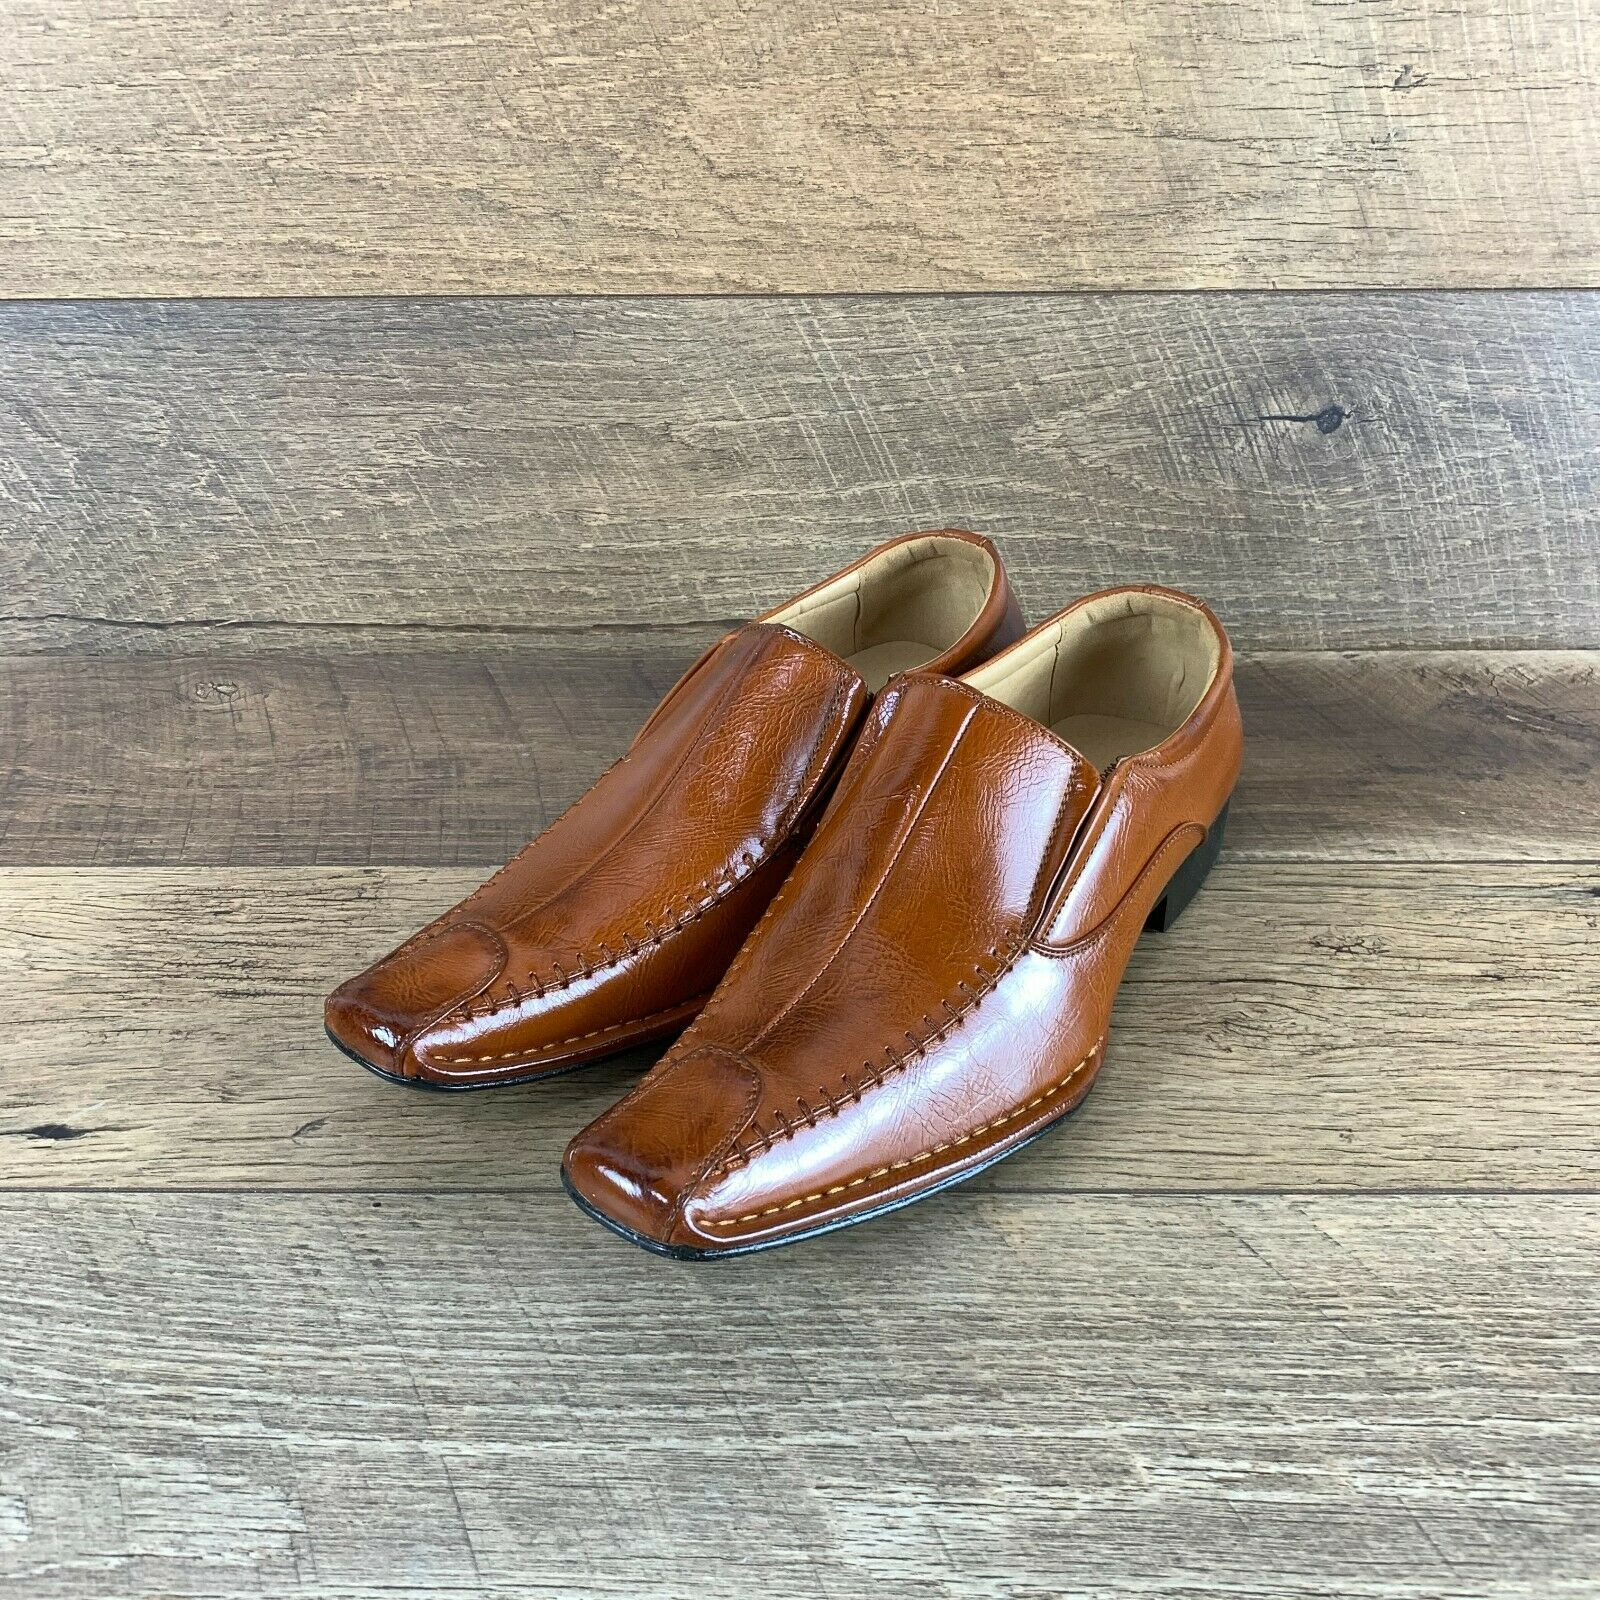 Enzo Romeo Erice Slip on Brown Leather Casual Dressy Loafer